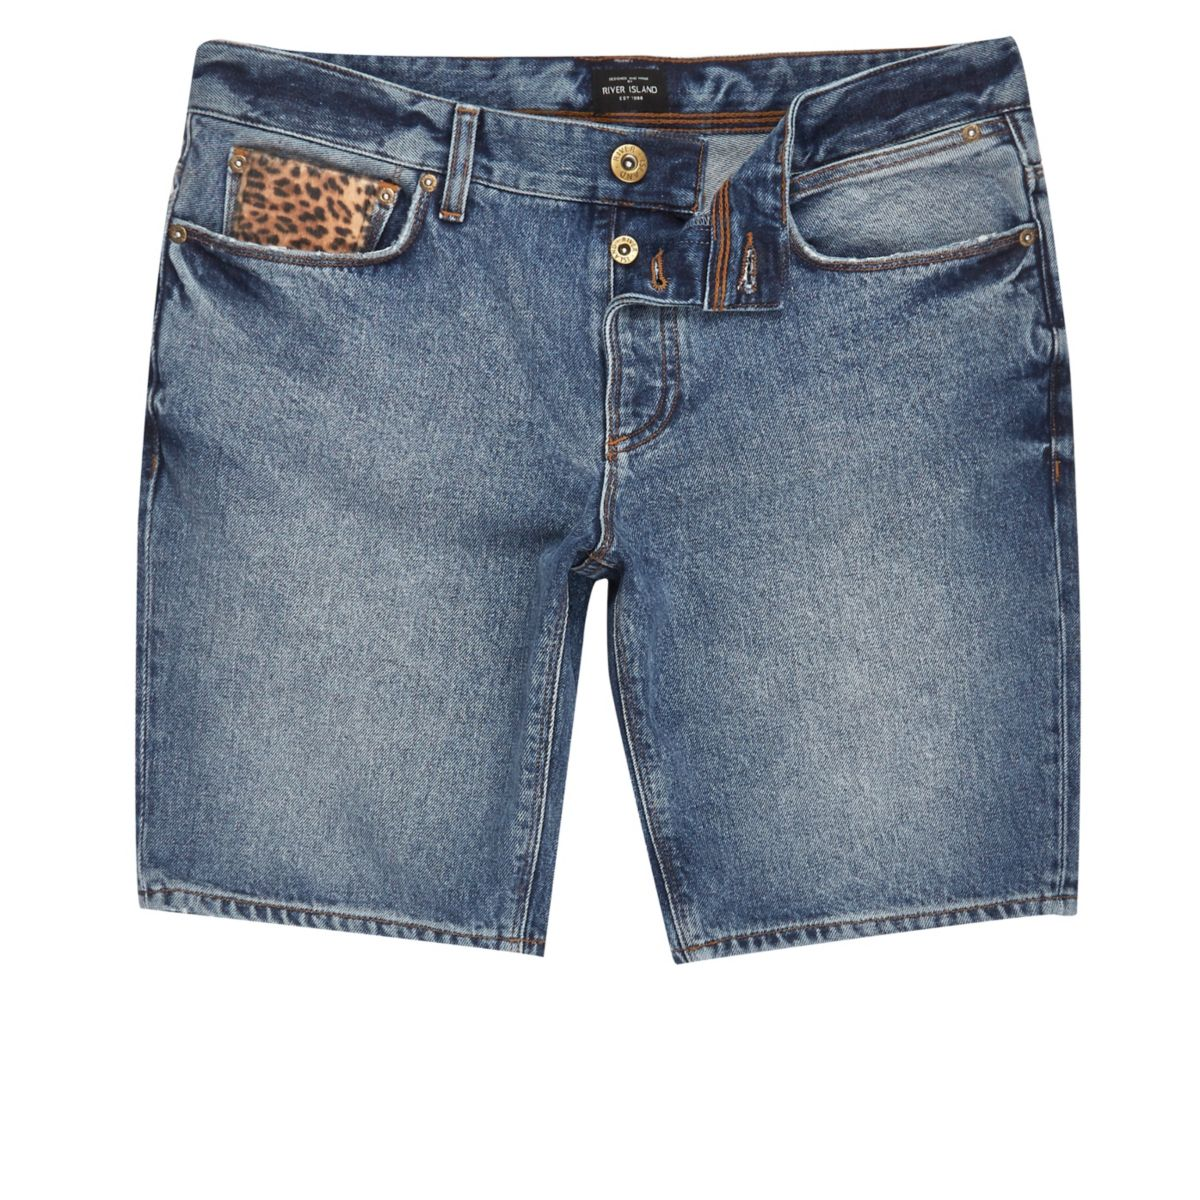 Blaue Skinny Fit Shorts mit Leopardenmuster